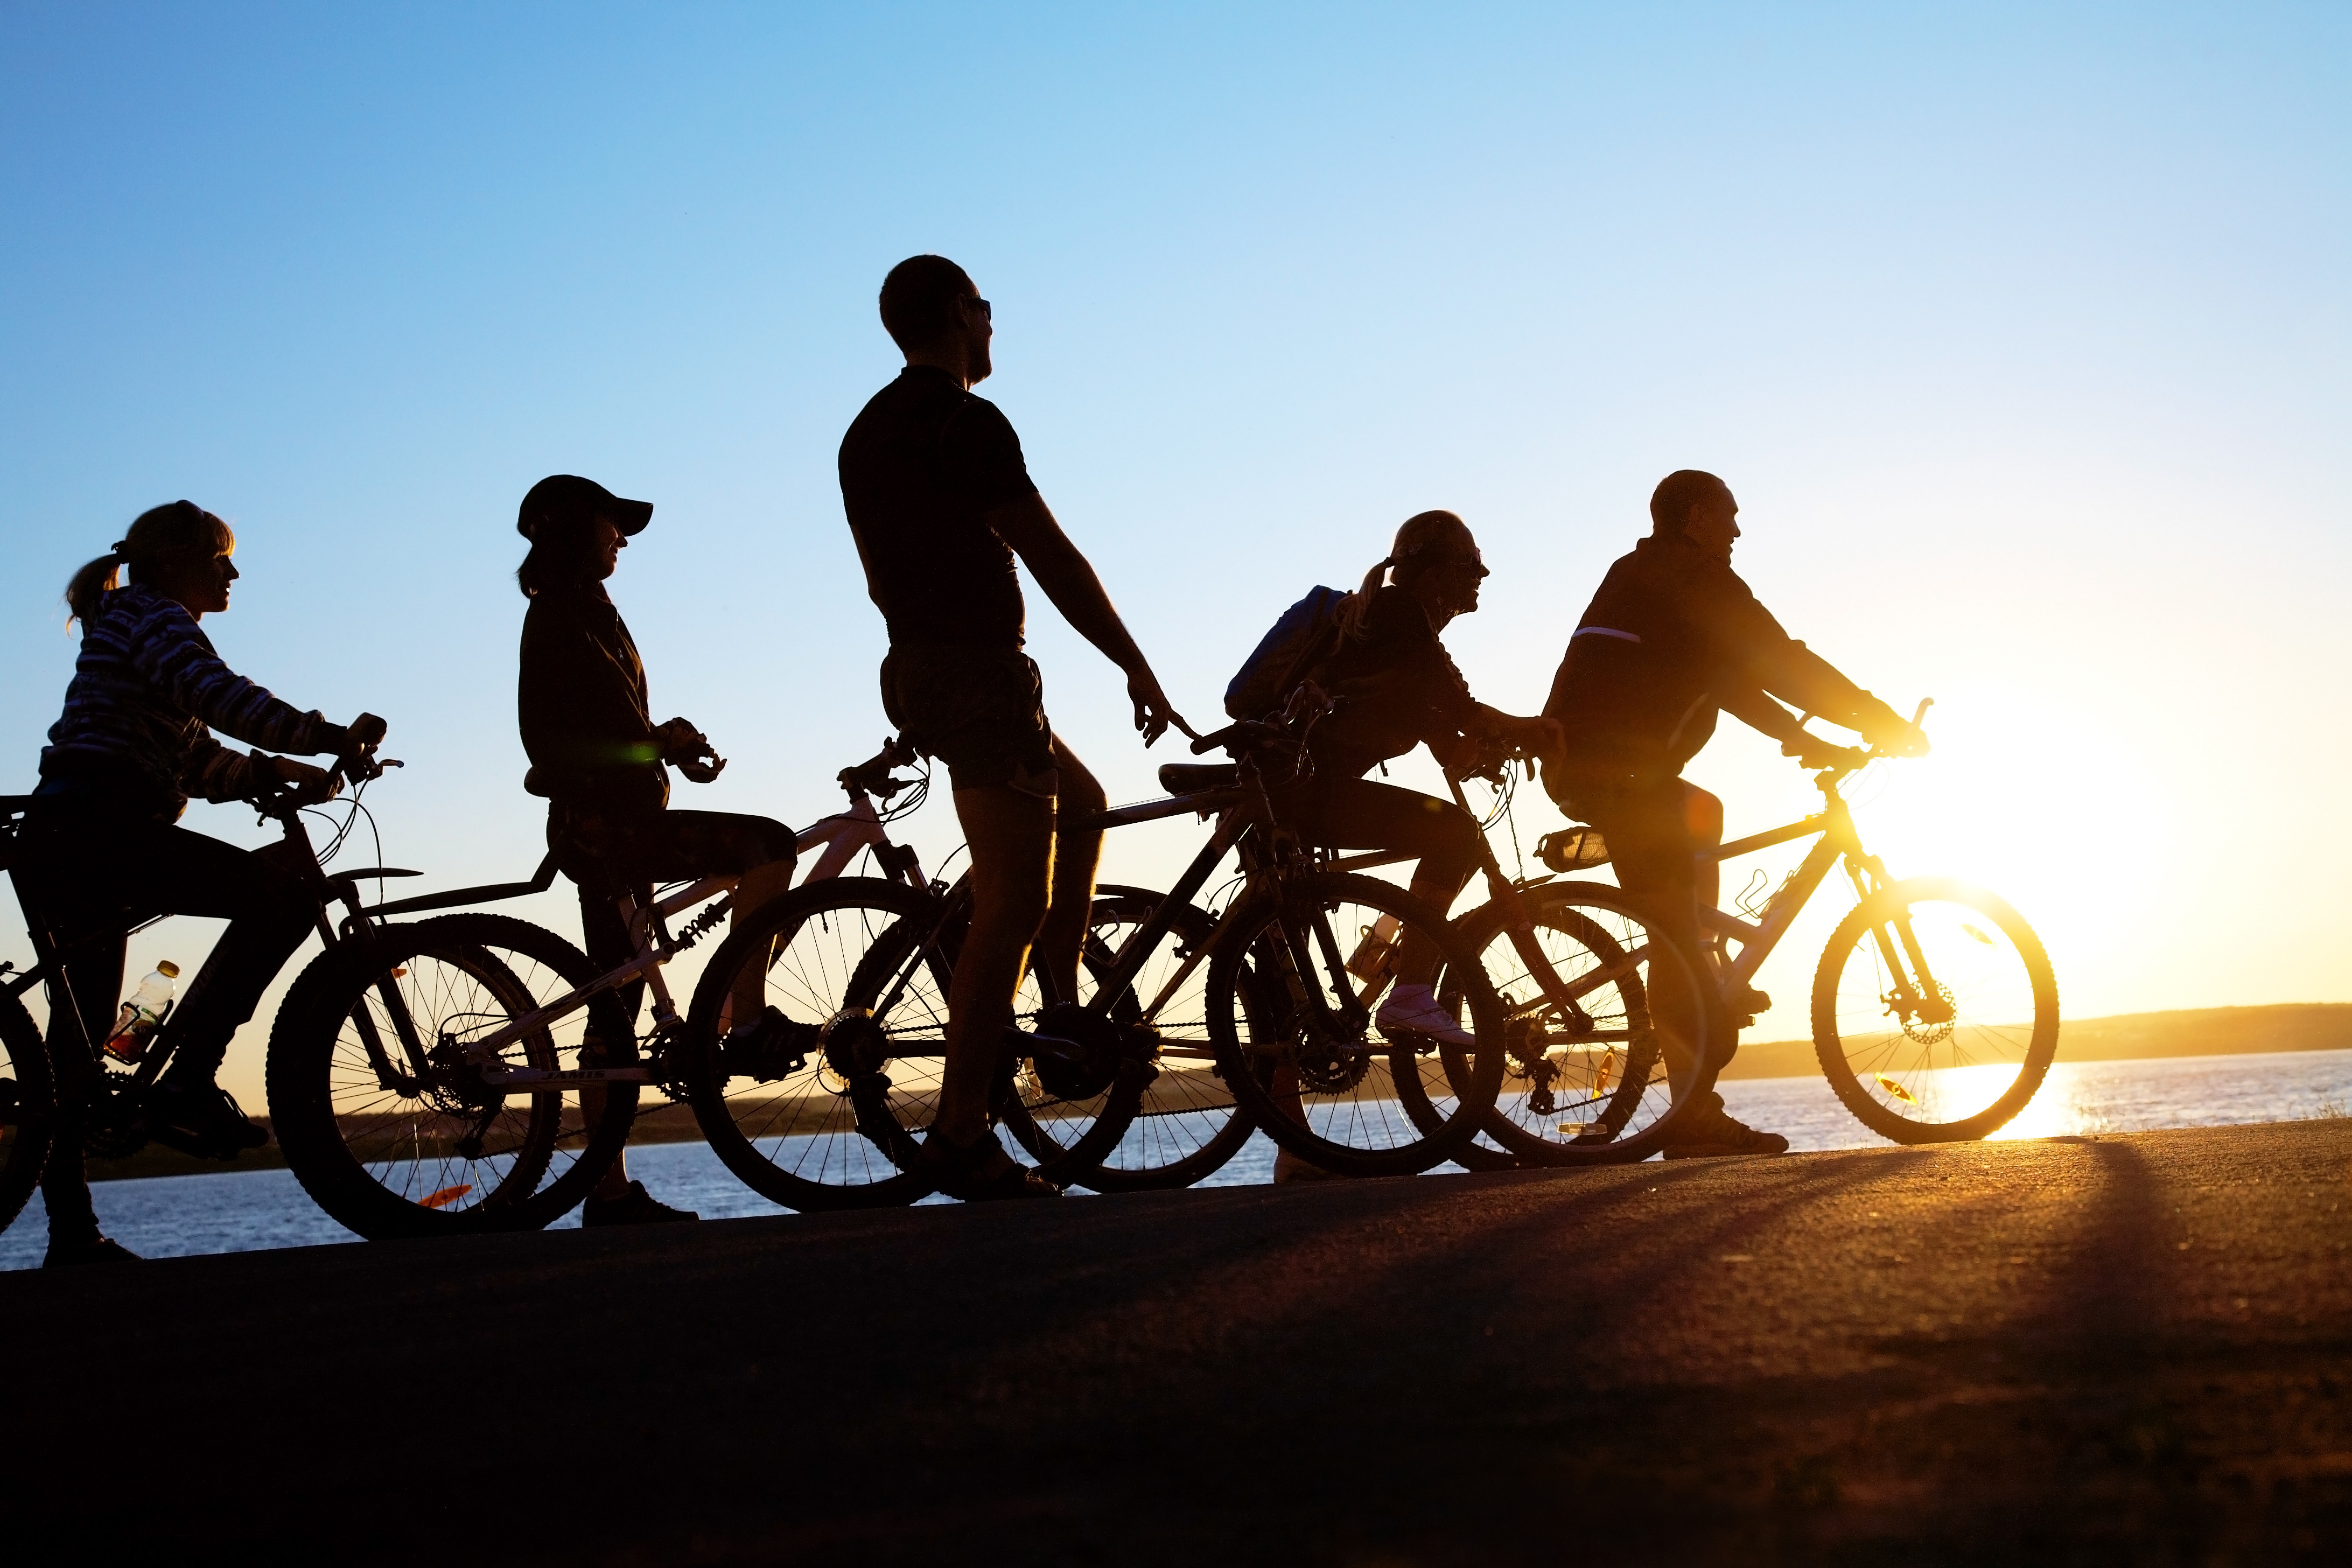 Bike Riding The Future Of Sustainable Tourism Ecobnb